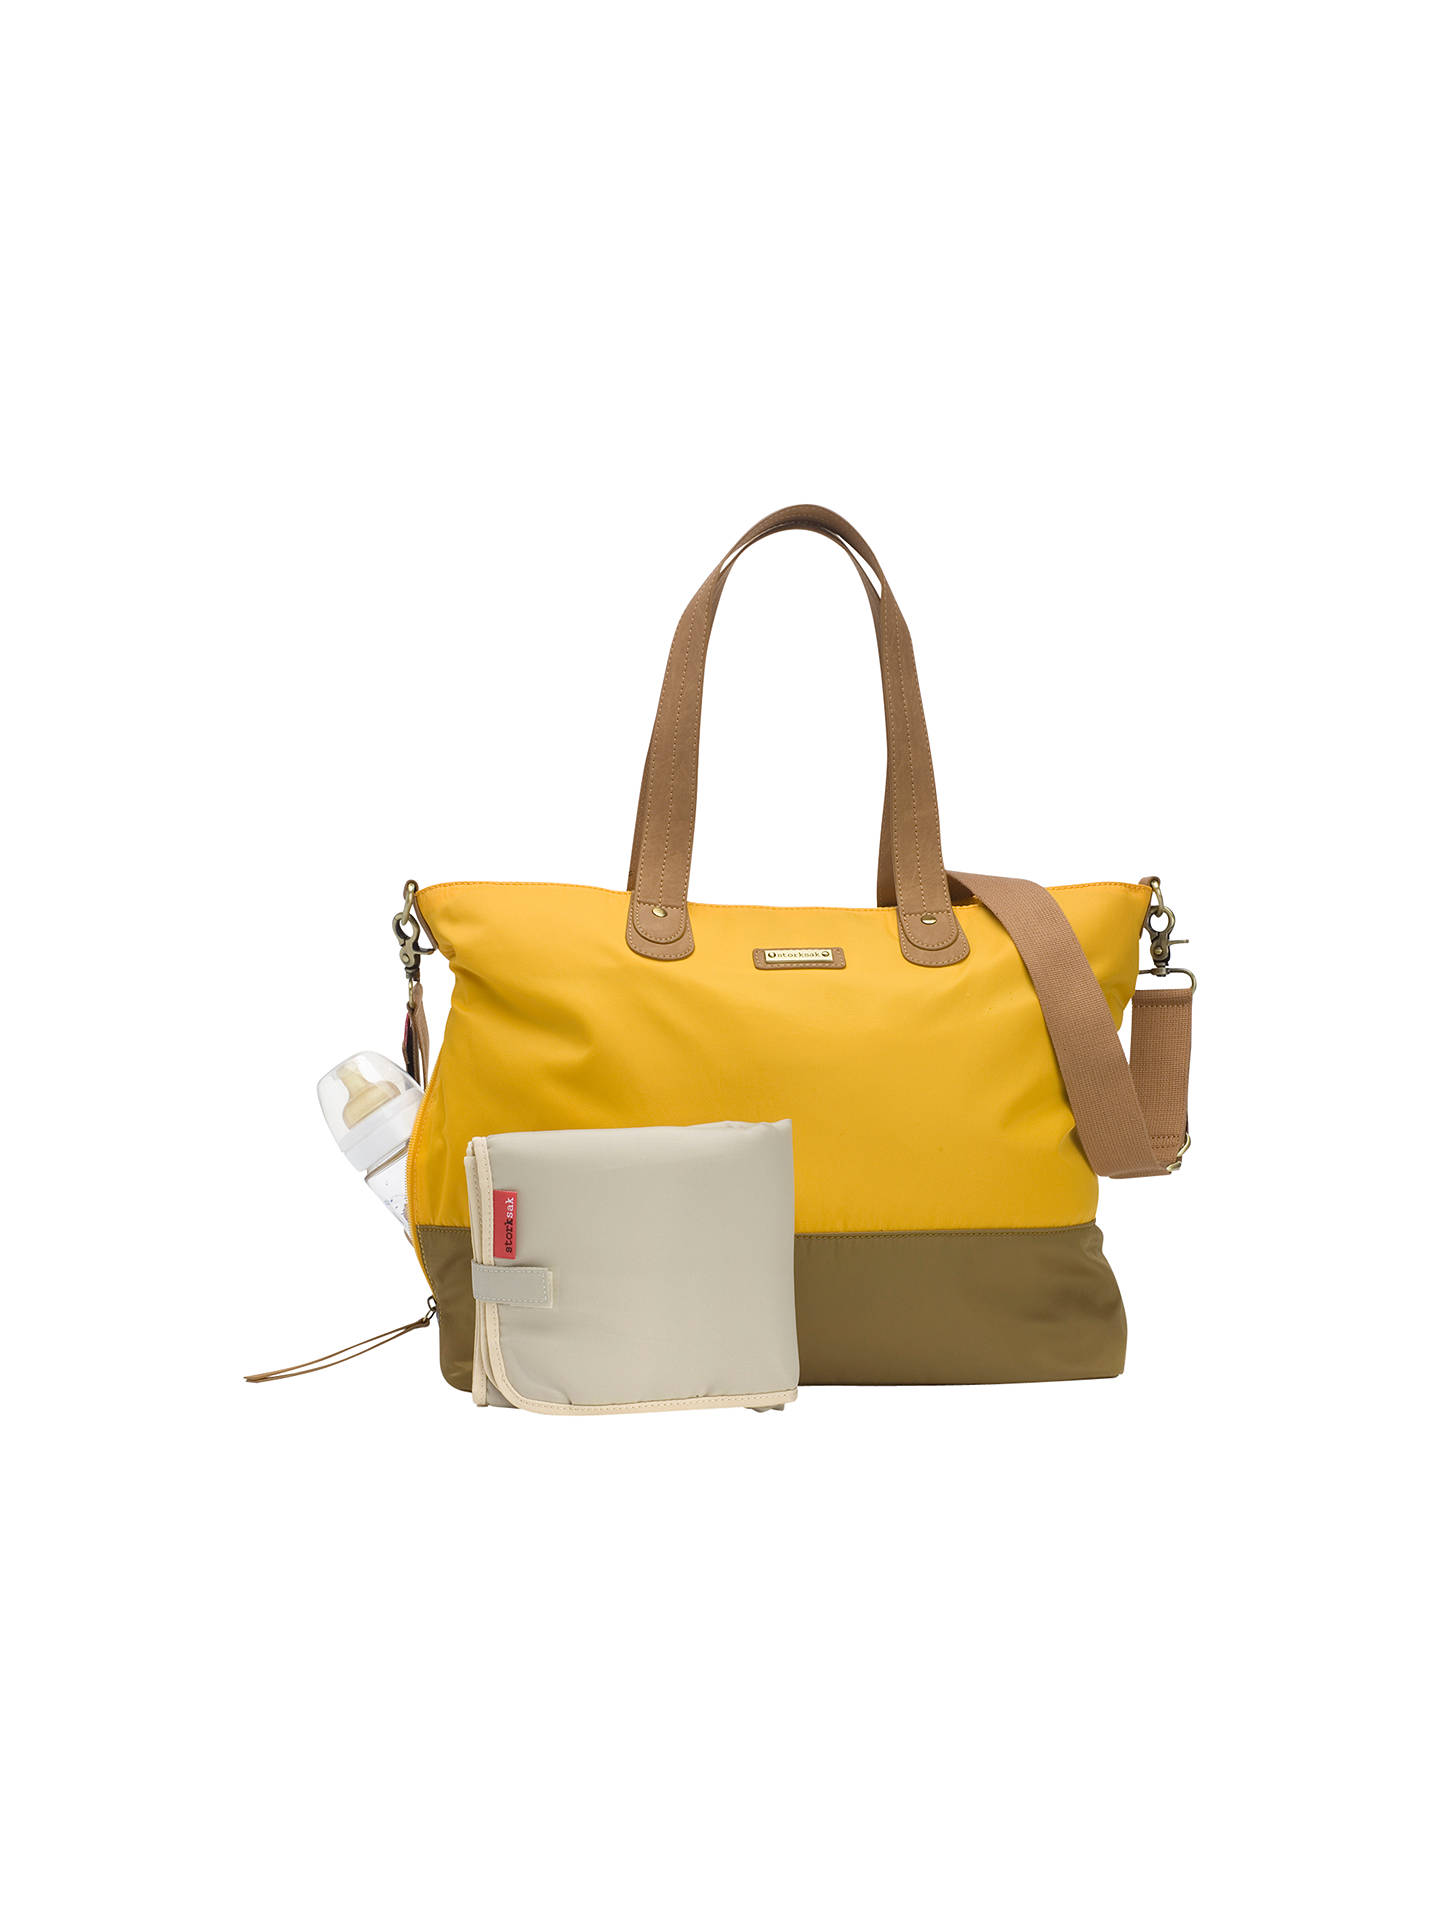 BuyStorksak Tote Changing Bag, Yellow Online at johnlewis.com